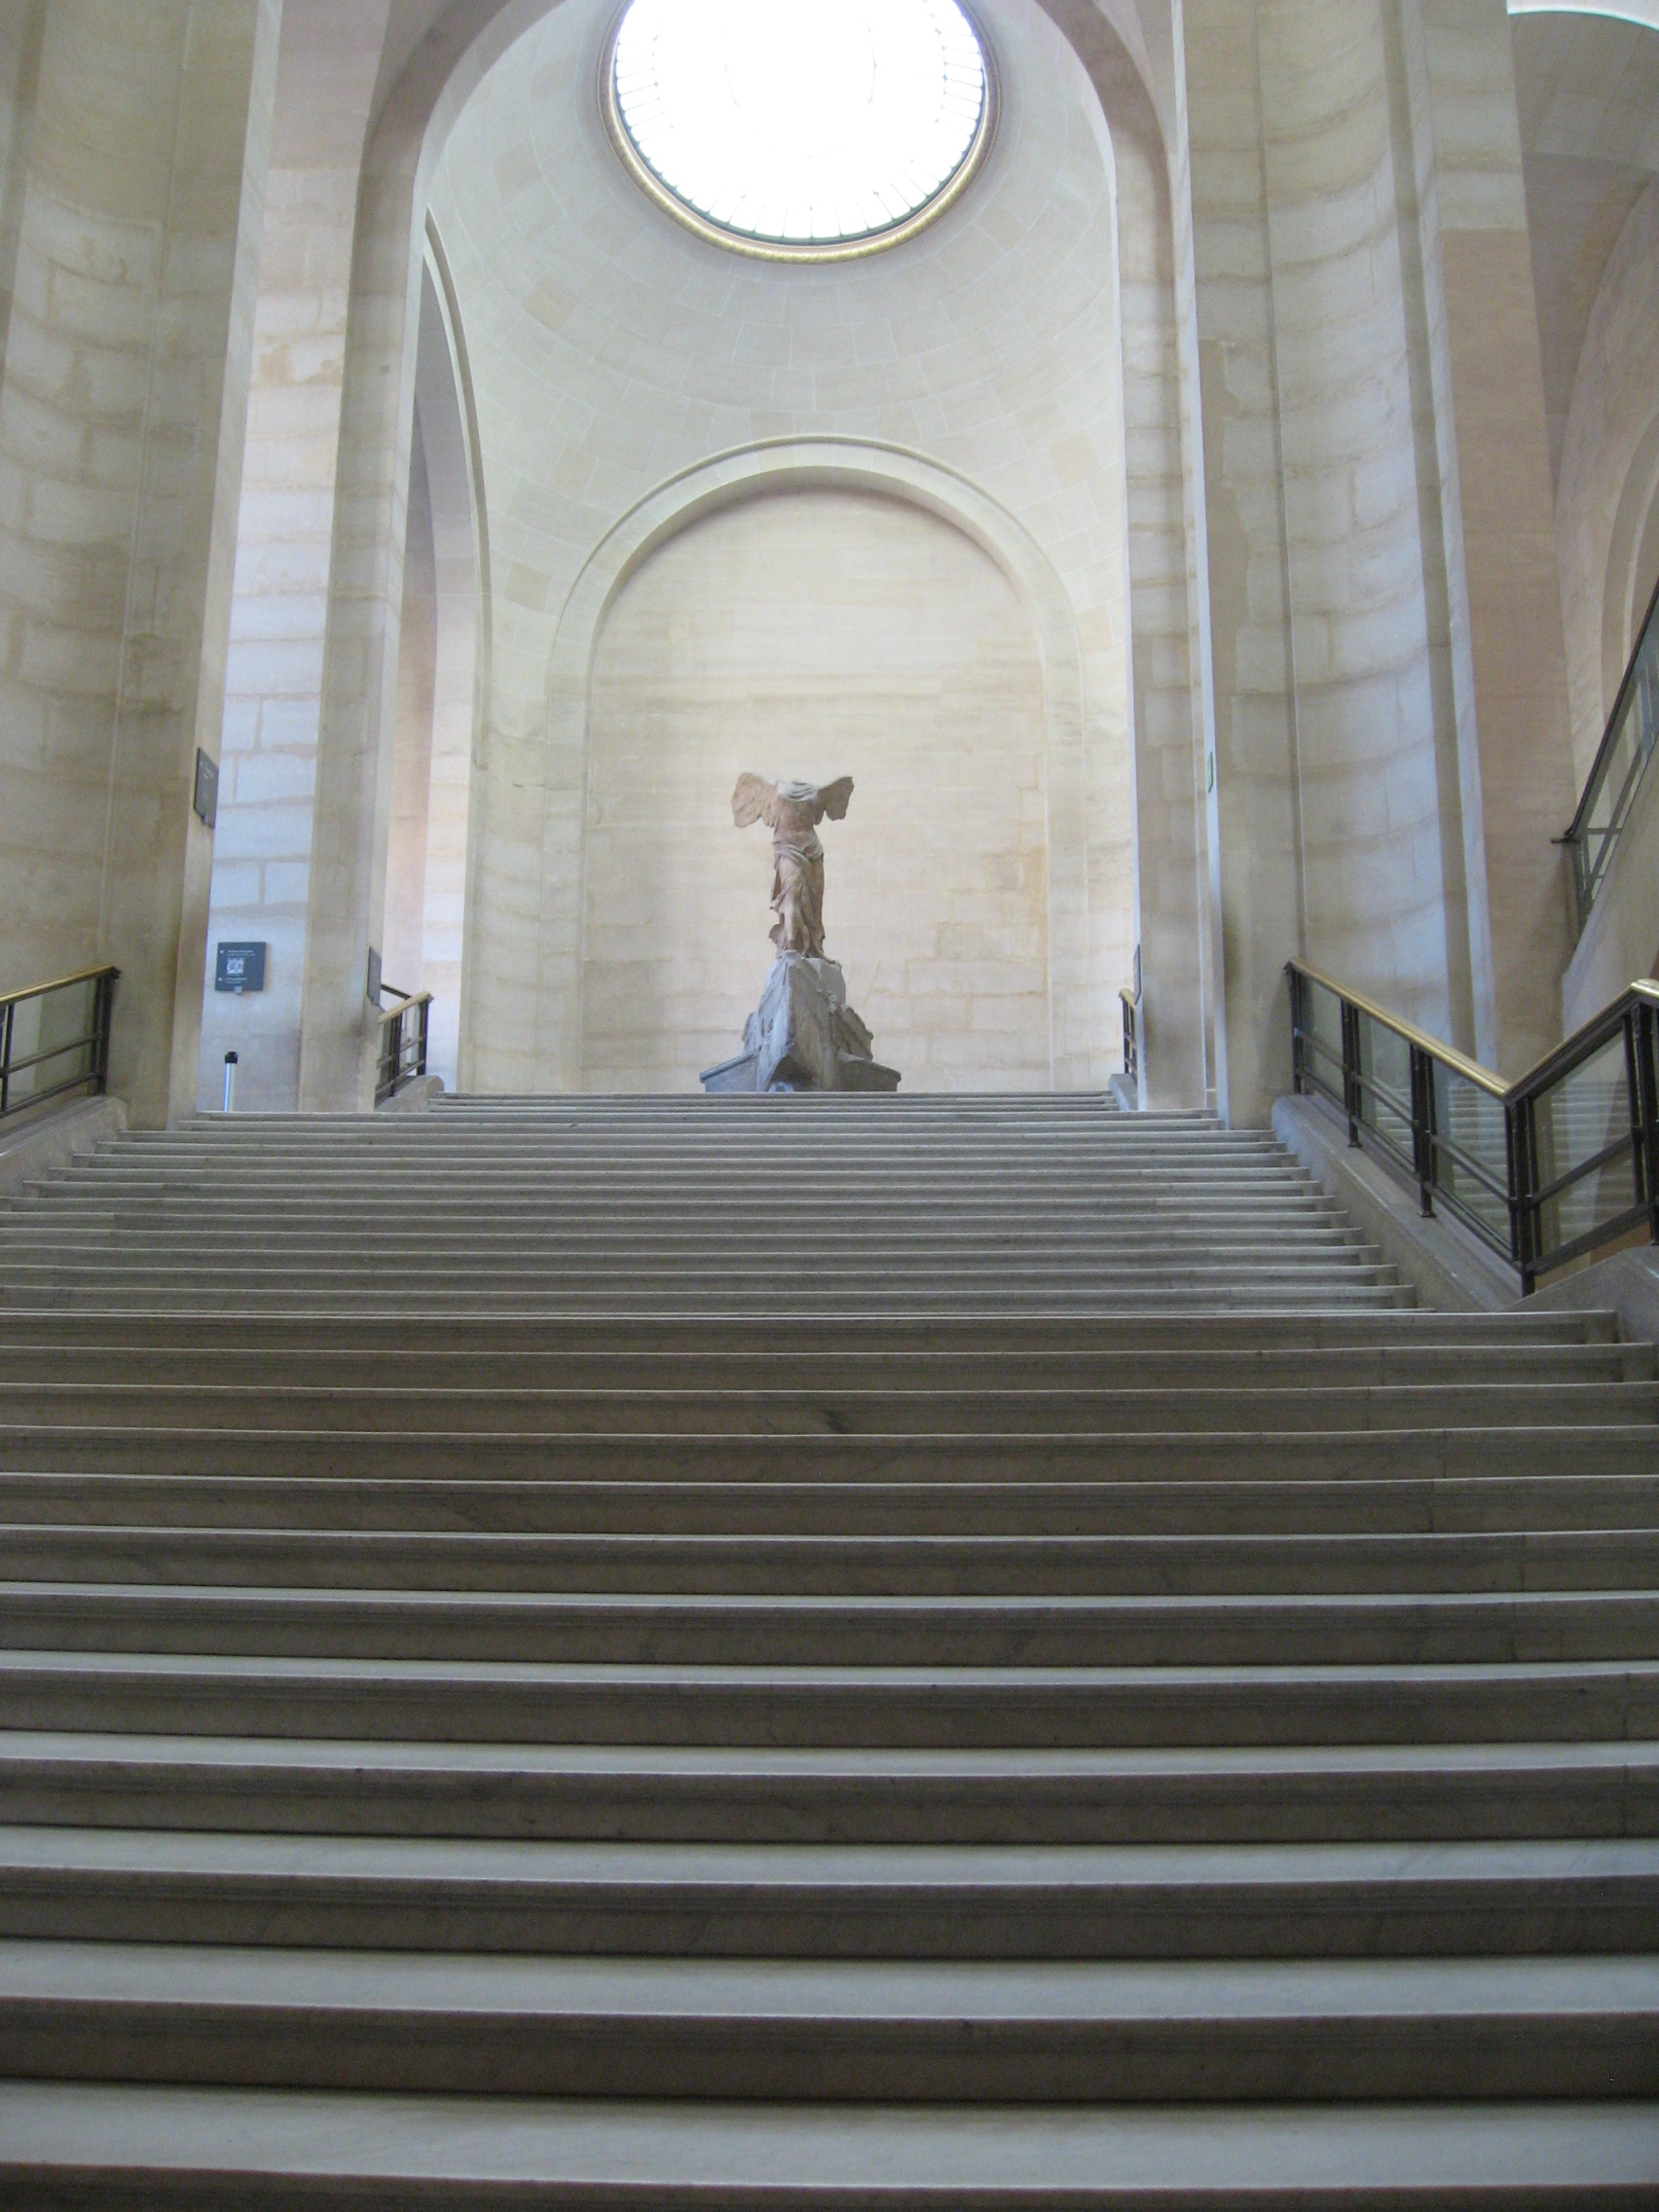 File:Nike of Samothrace from the bottom of the stairs.JPG